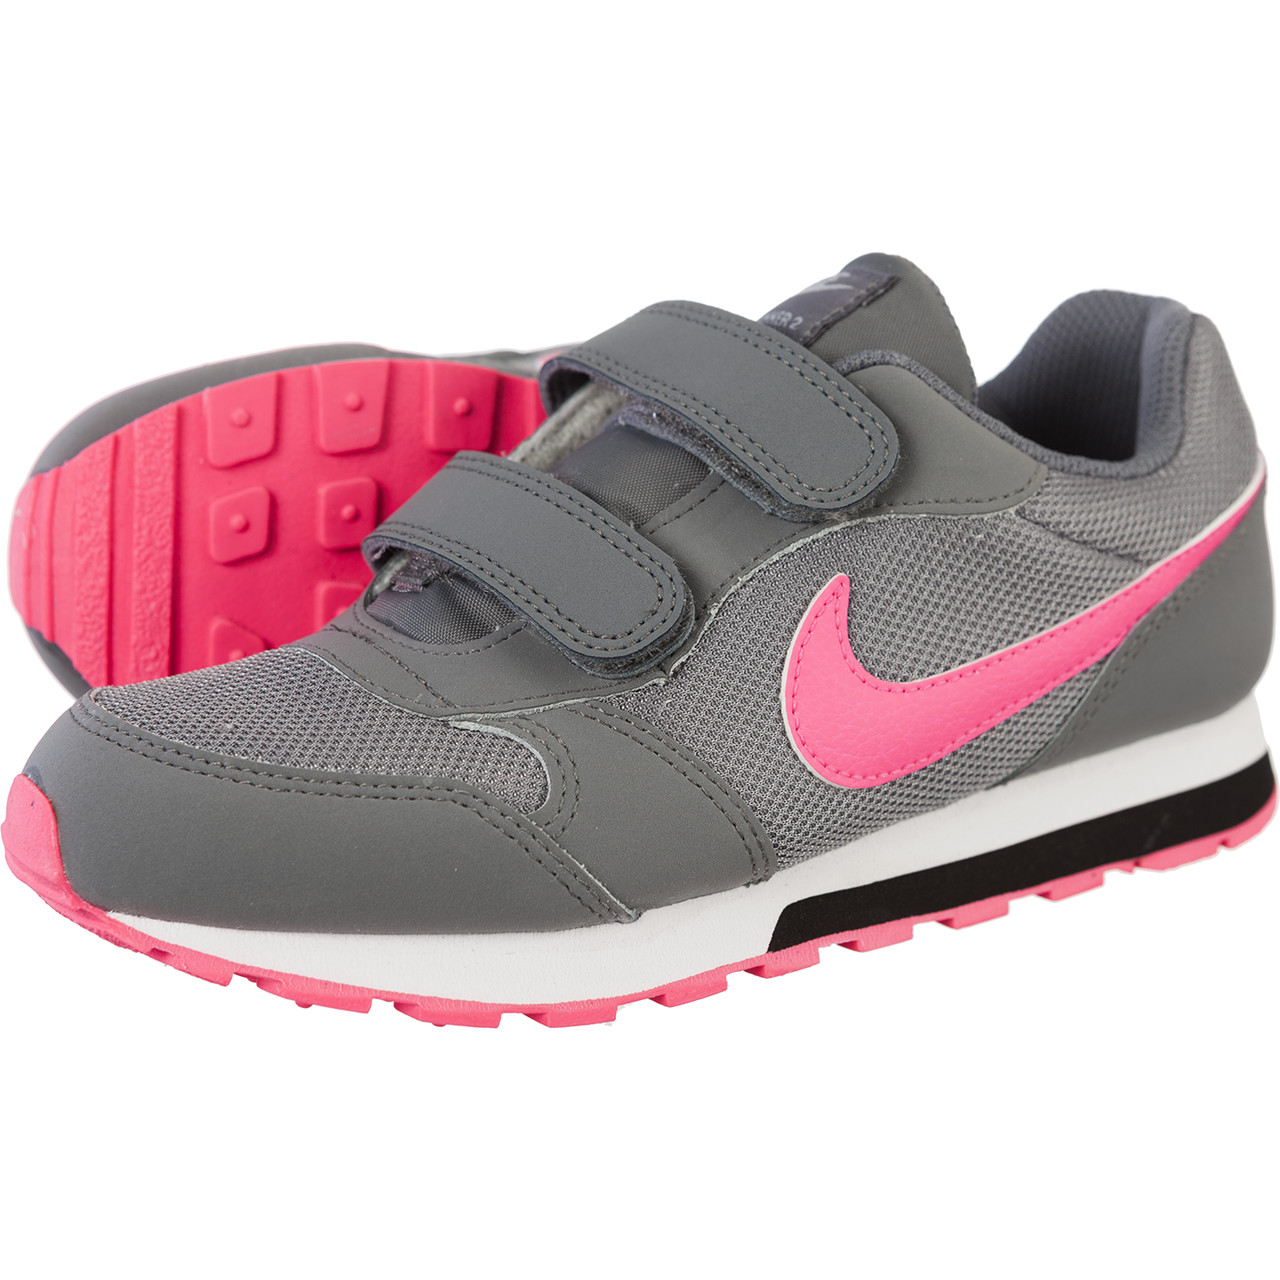 buty nike md runner 2 002 w sklepie. Black Bedroom Furniture Sets. Home Design Ideas